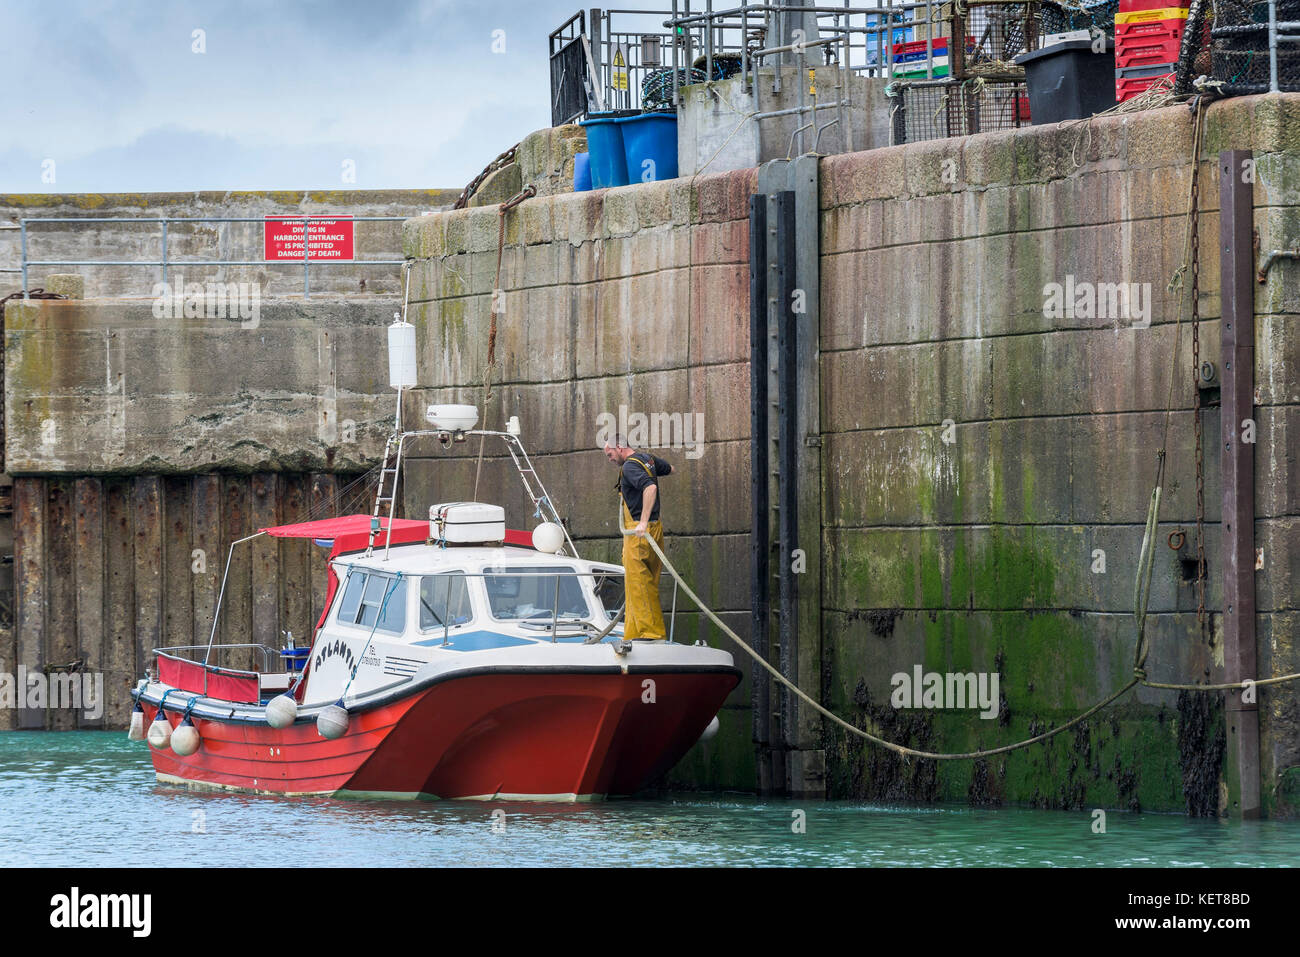 Newquay Harbour Cornwall - a boat being tied up at the quay at Newquay Harbour. - Stock Image